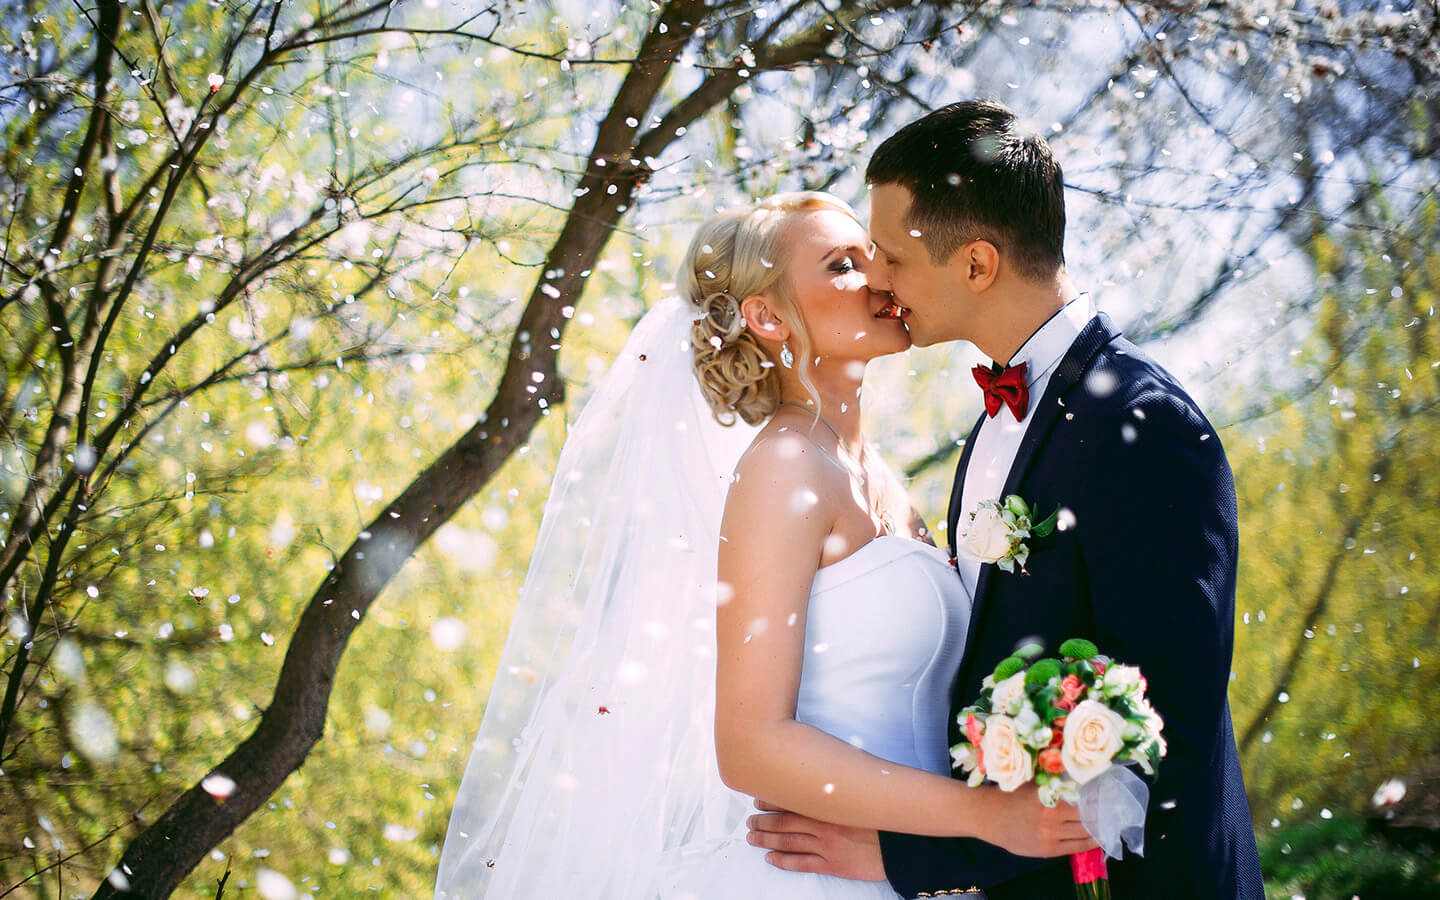 Bride and groom kissing at a Michigan Wedding in the spring